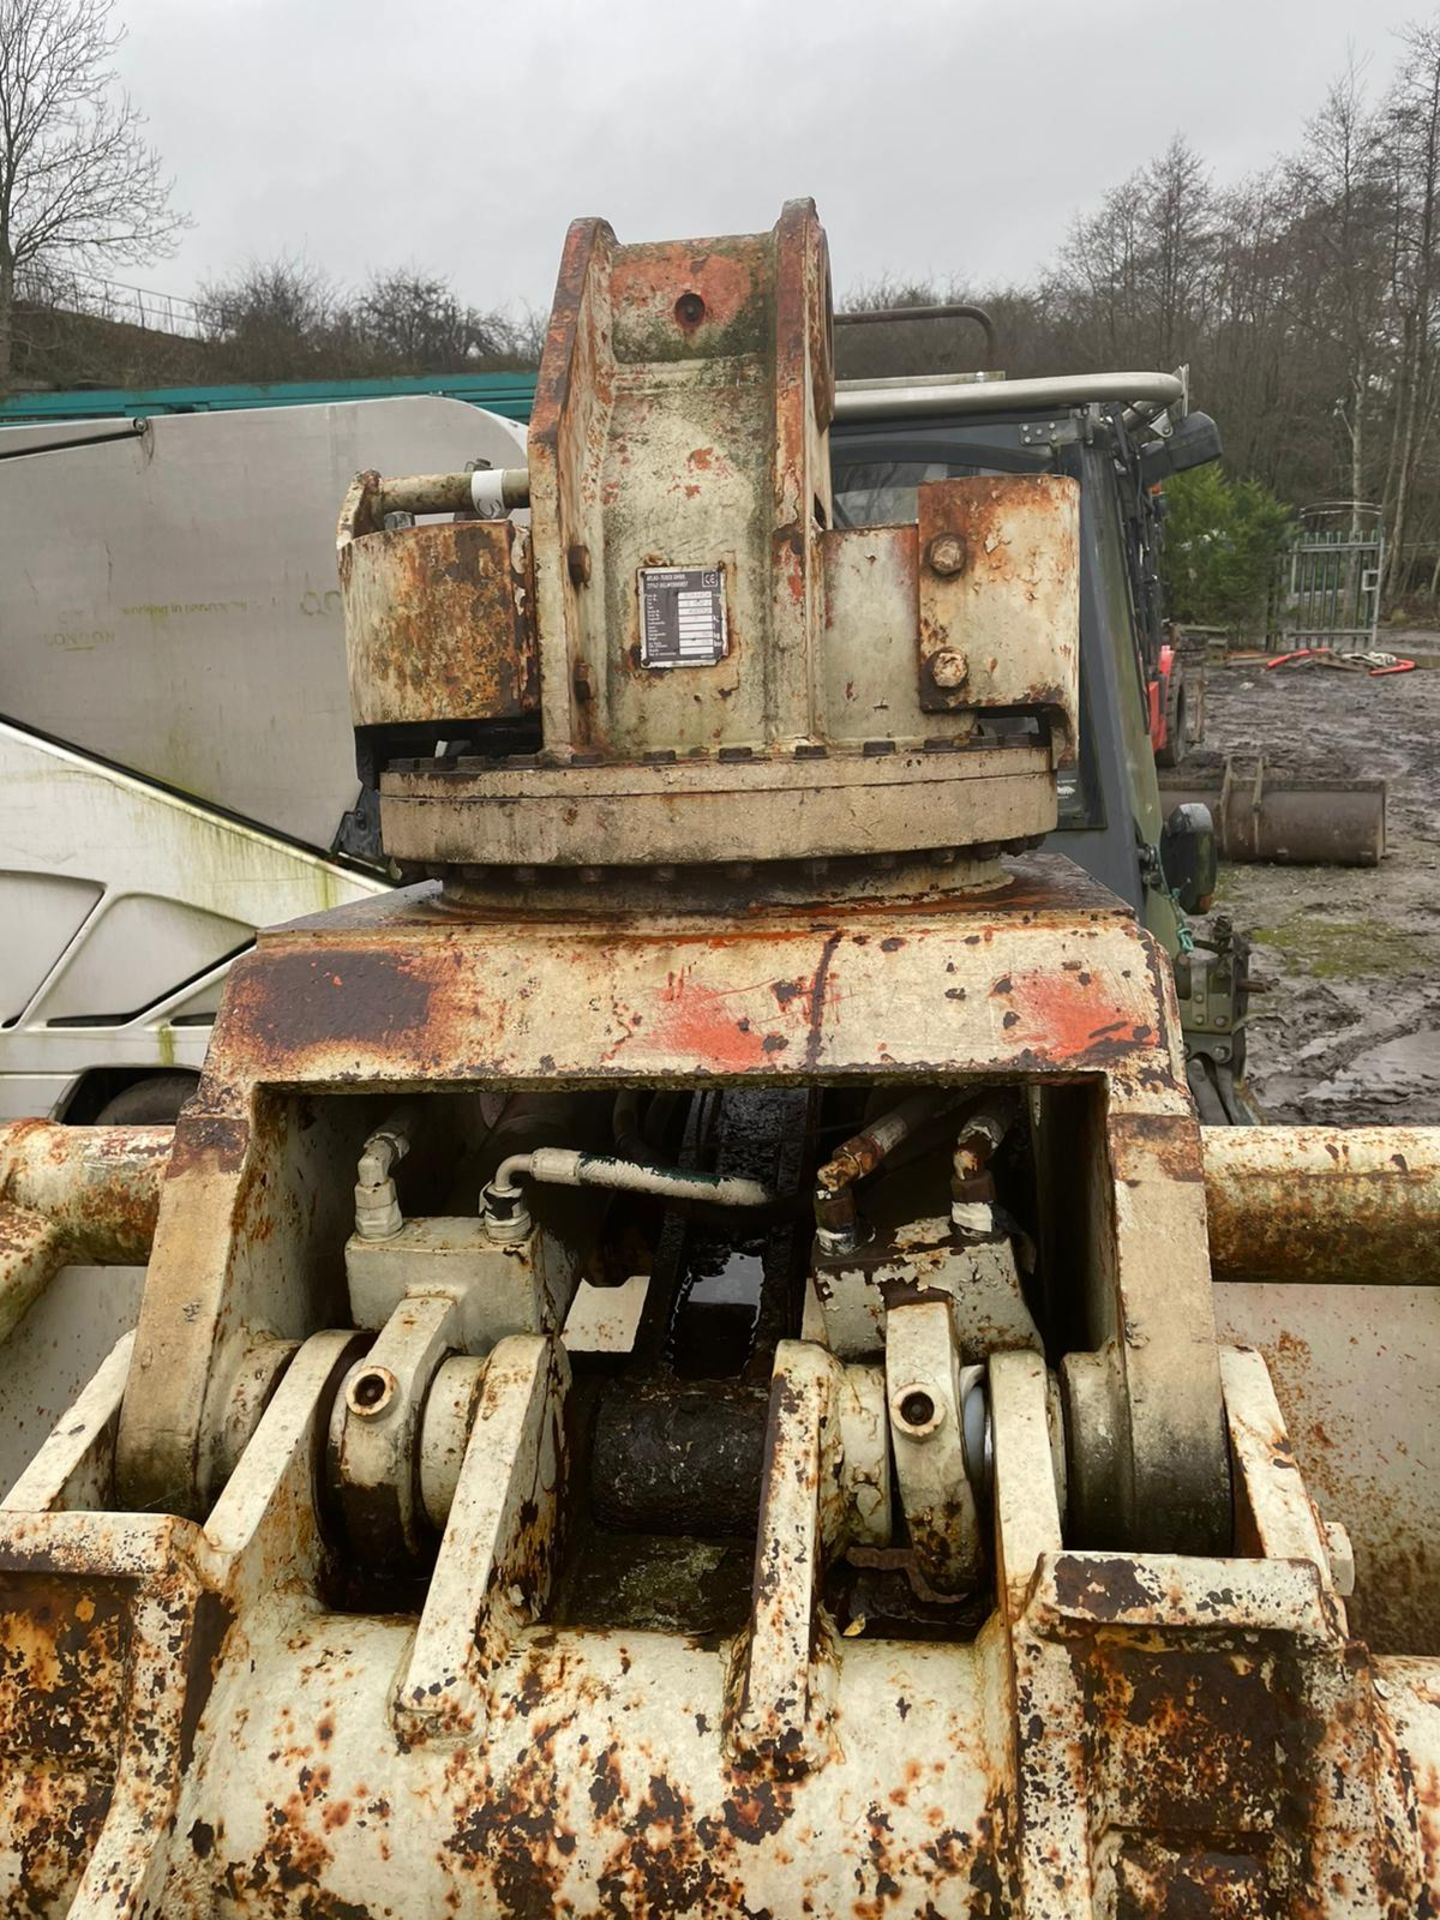 TEREX ATLAS E832-2 GRAPPLE, ROTATING BODY, WEIGHT: 193KG, DONE LITTLE WORK *PLUS VAT* - Image 7 of 8